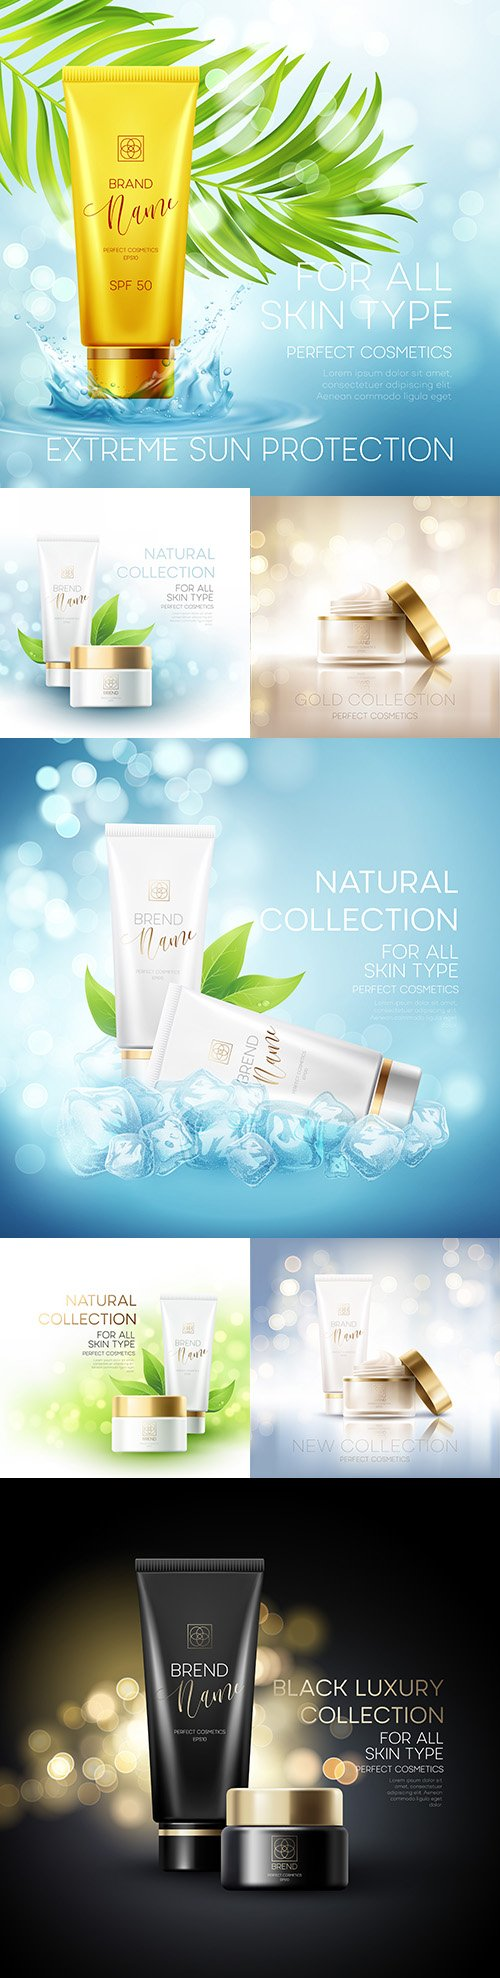 Design advertising cosmetic products and sun protection